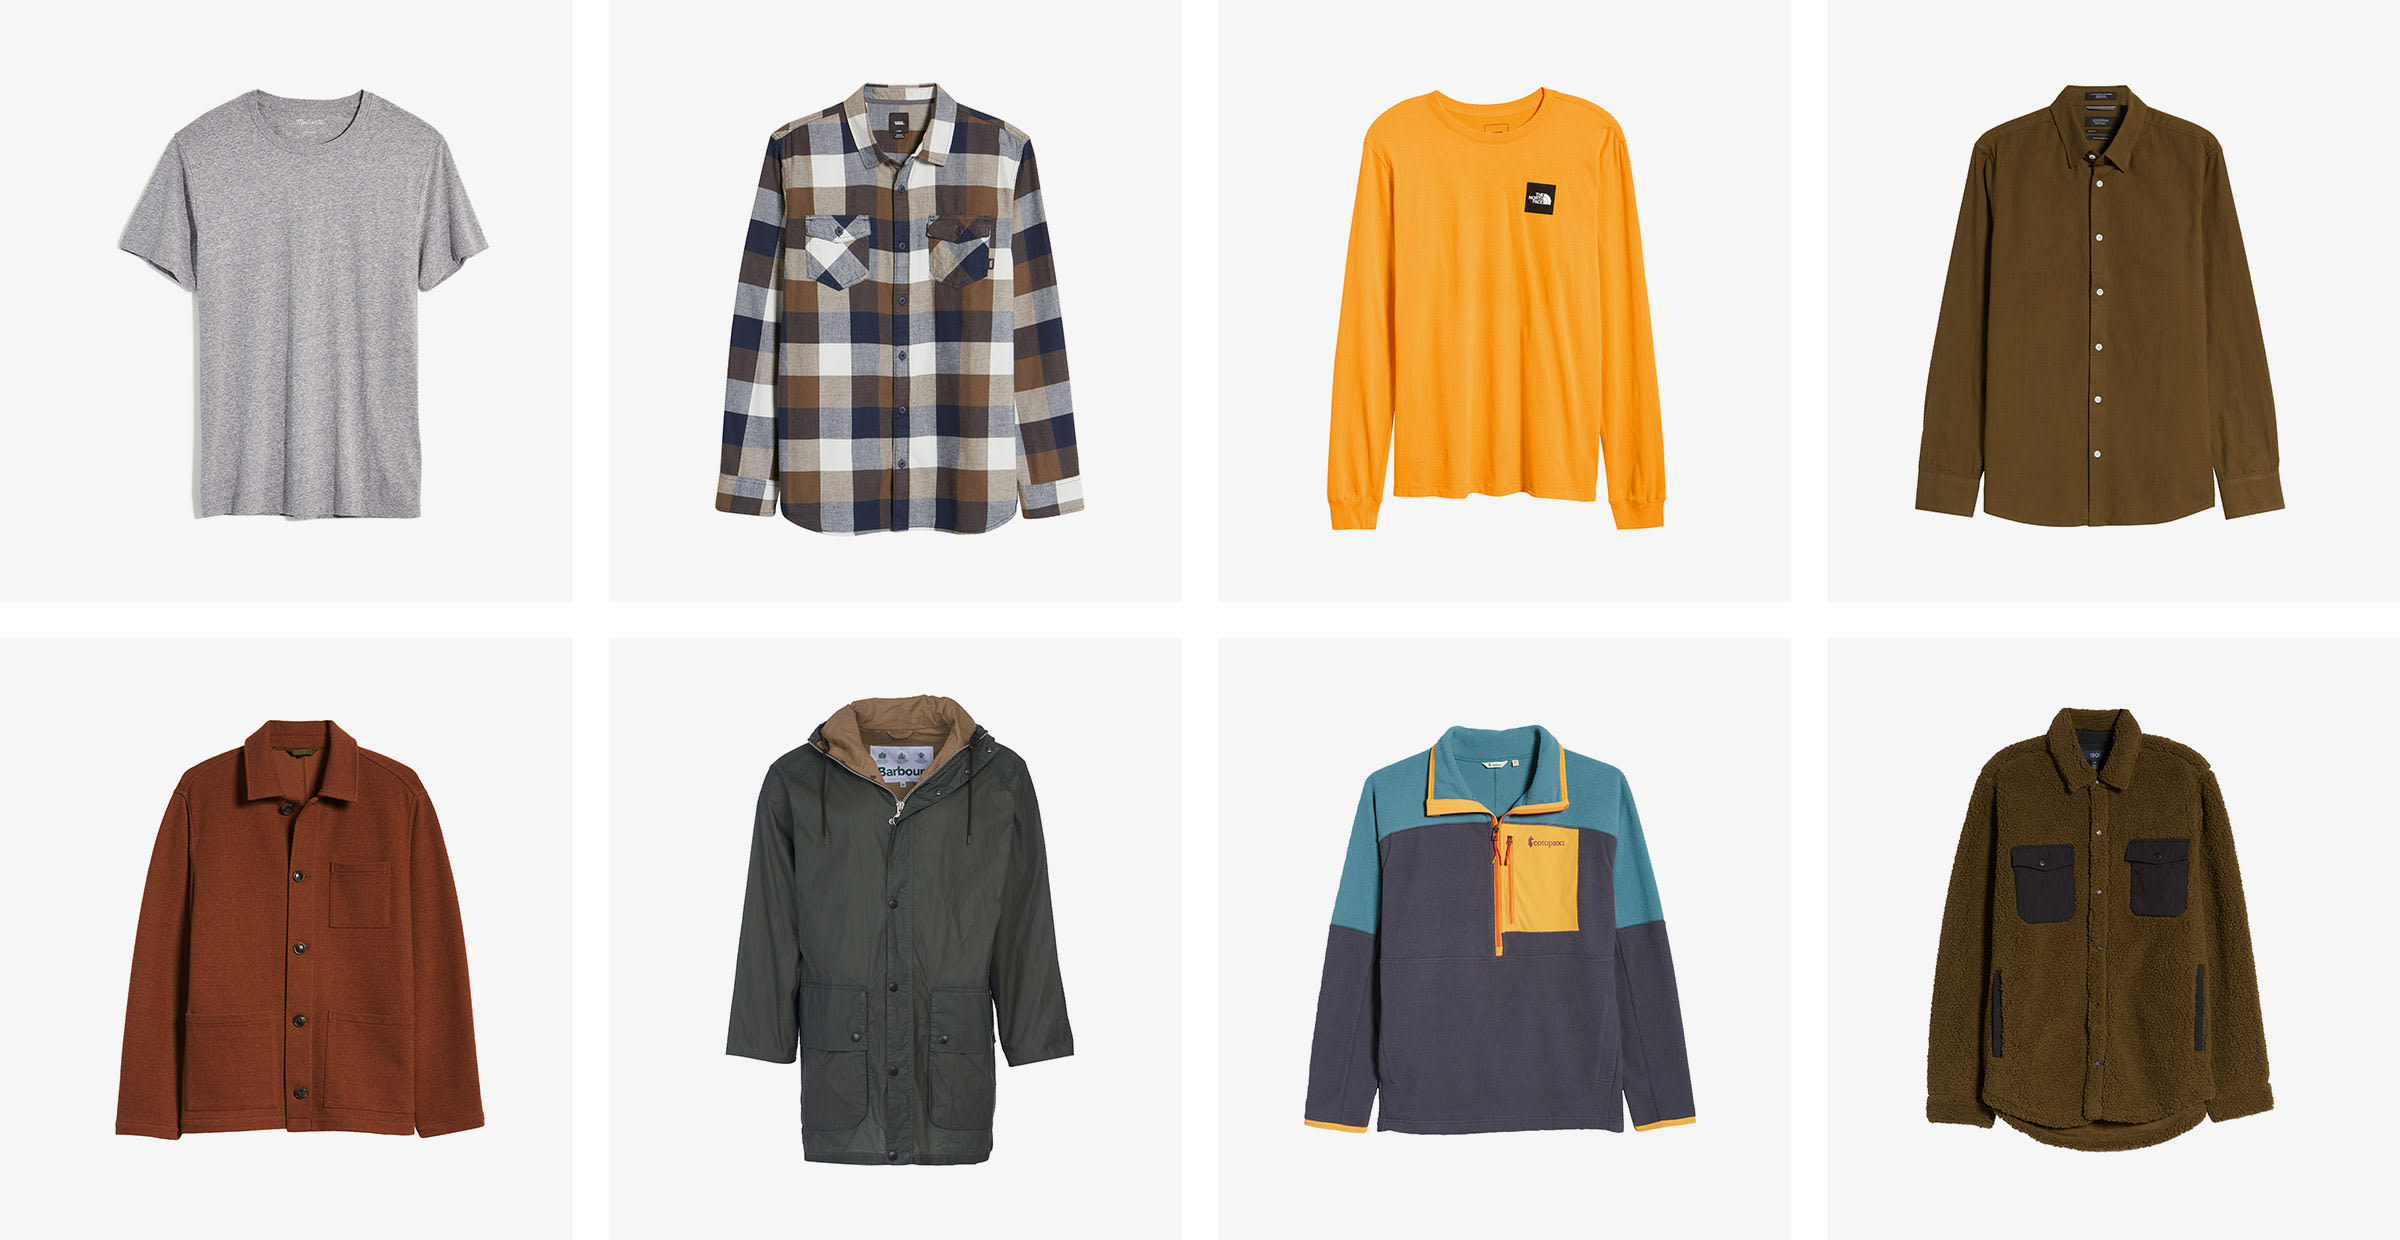 Men's grey tee, plaid shirt, orange tee, brown button-down, maroon button-down, brown parka, navy pullover and brown jacket.